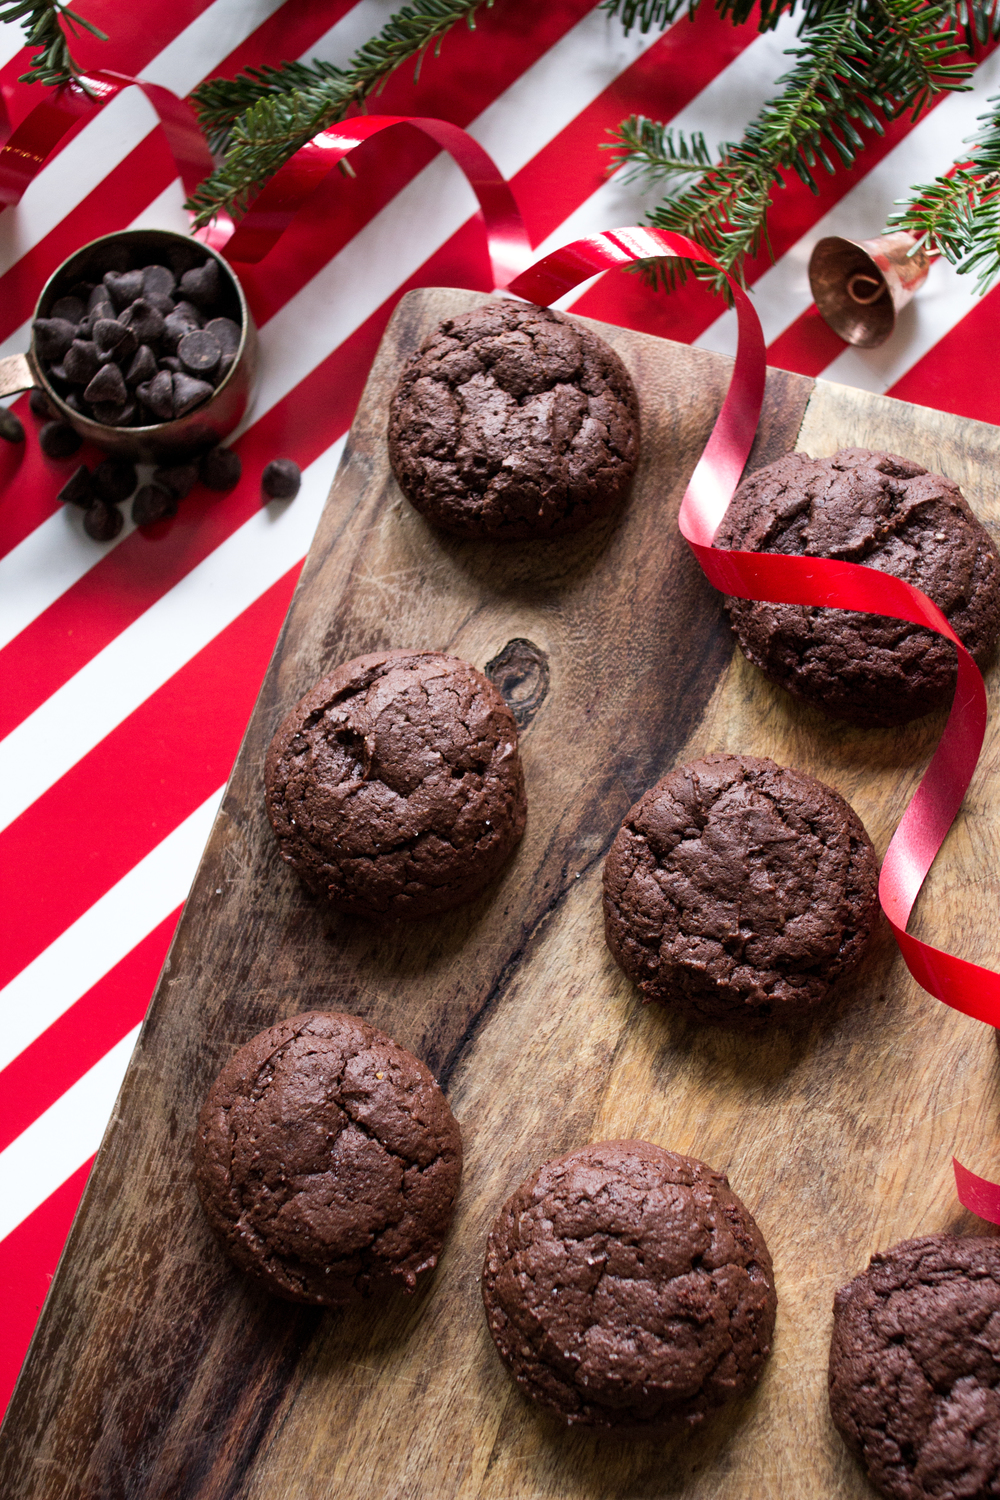 Peppermint Cocoa Cookies (Paleo, GF, Dairy-Free) via allthedelights.com